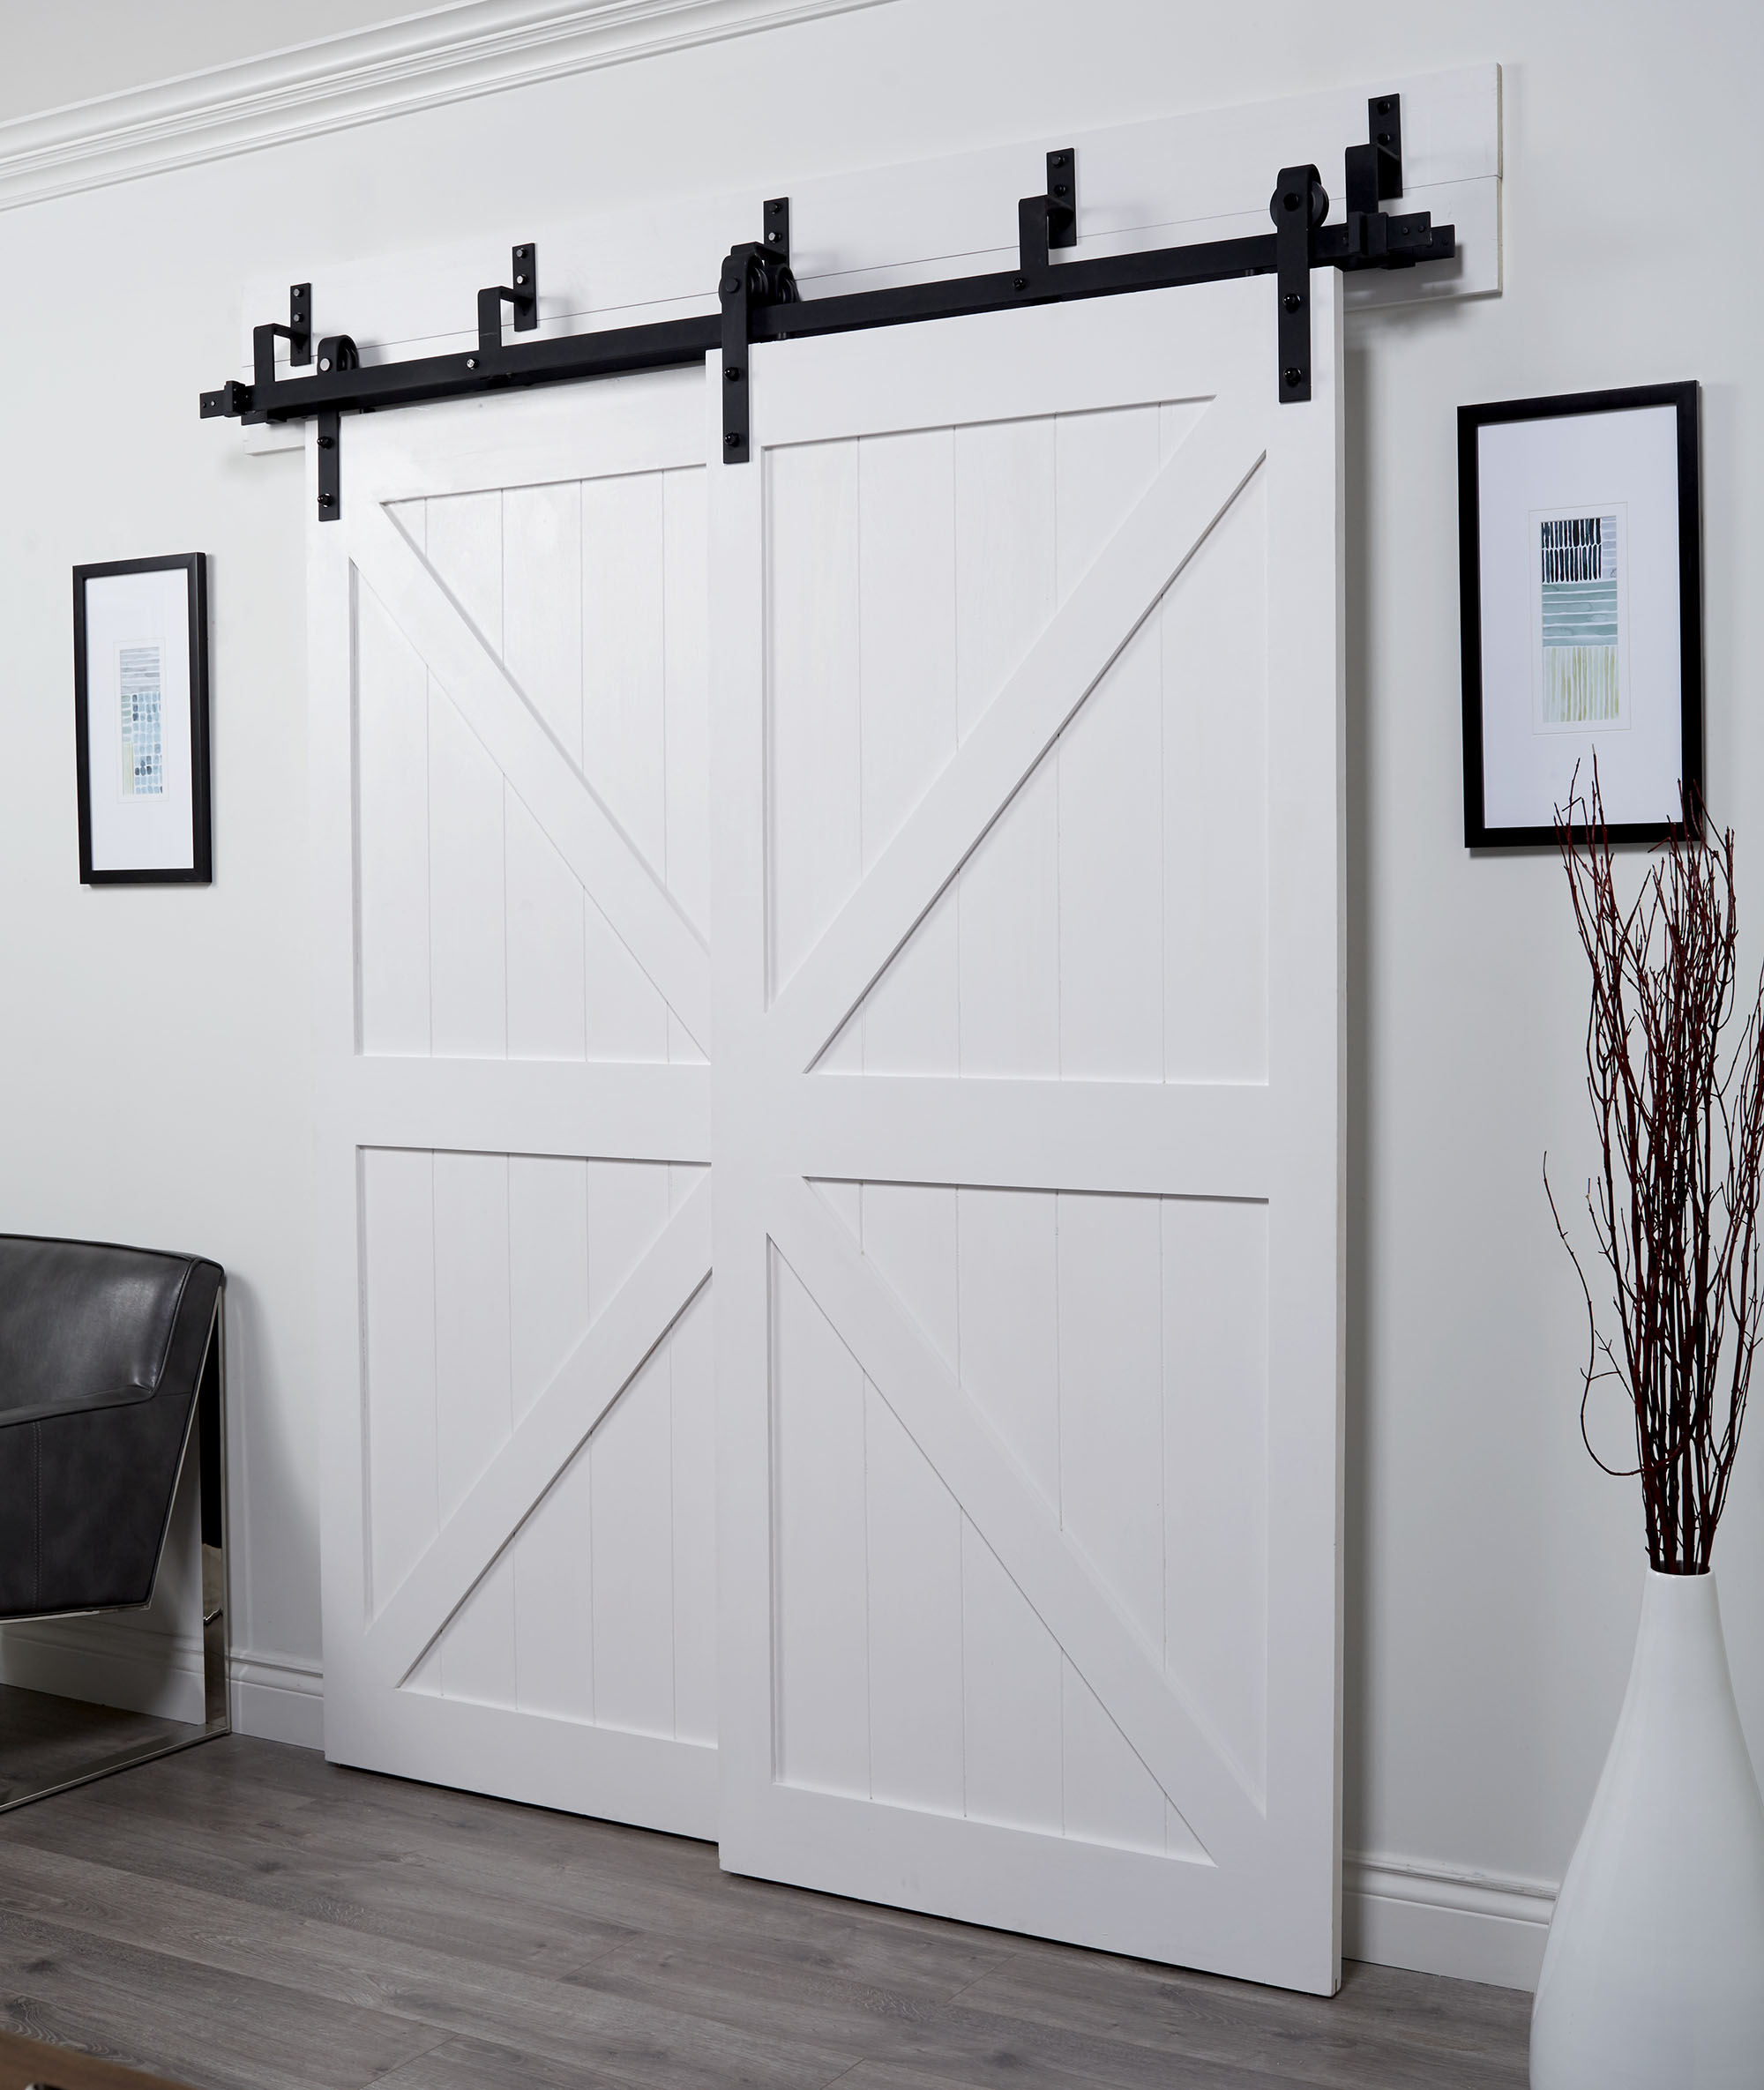 Overlapping Barn Doors | Bypass Barn Door Hardware Kit | Bypass Barn Doors